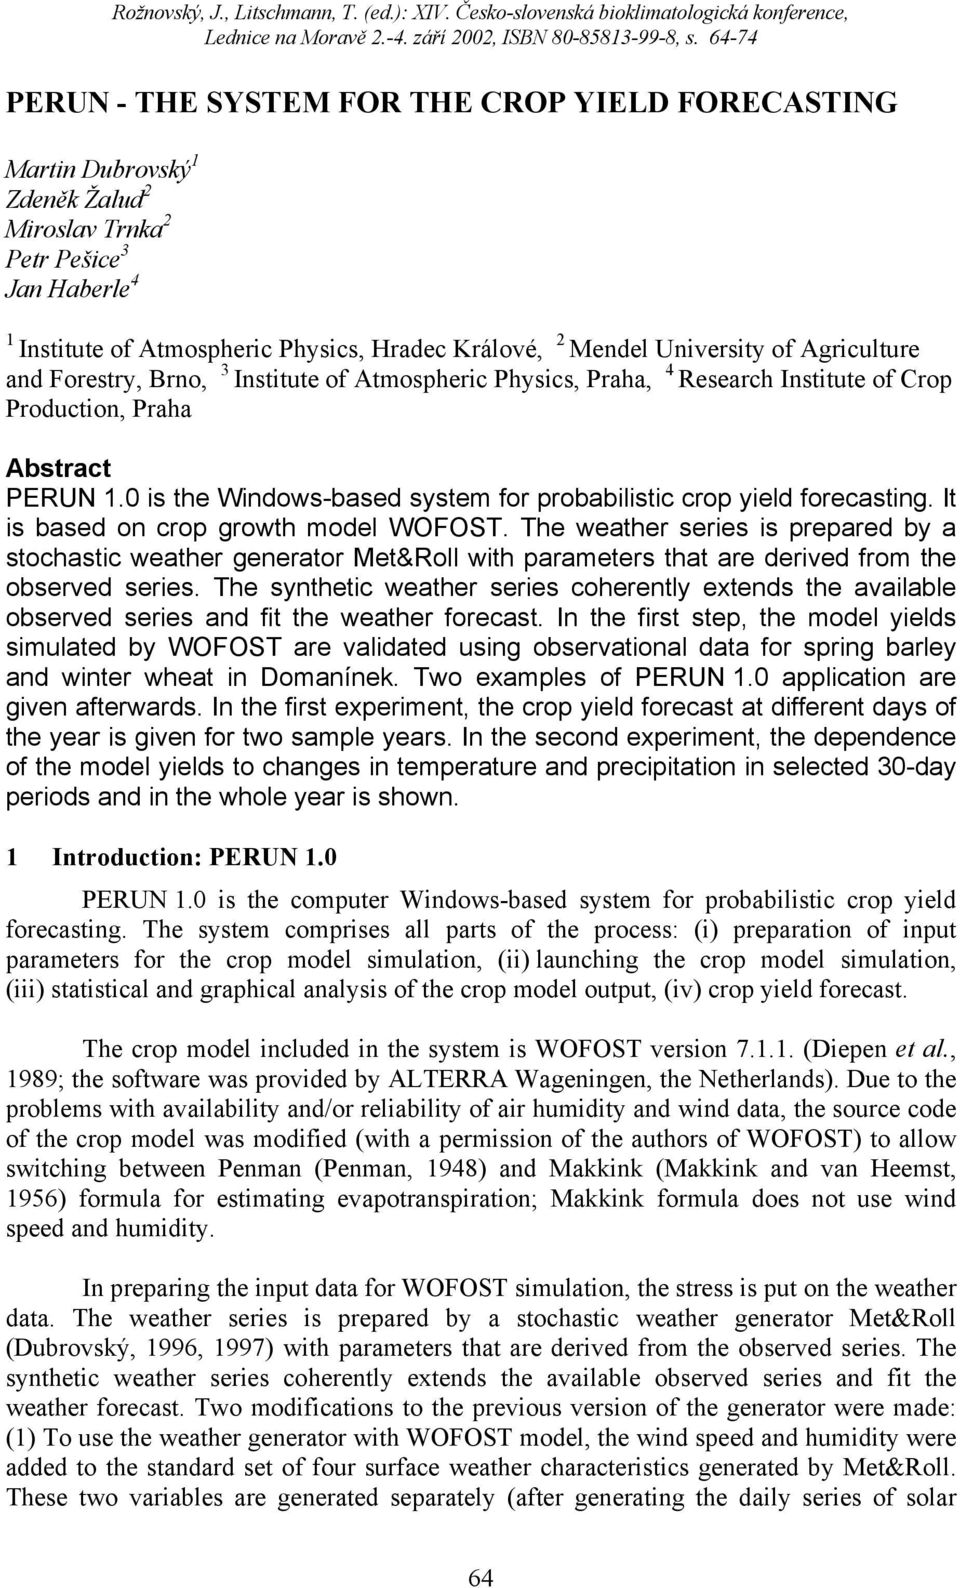 University of Agriculture and Forestry, Brno, 3 Institute of Atmospheric Physics, Praha, 4 Research Institute of Crop Production, Praha Abstract PERUN 1.